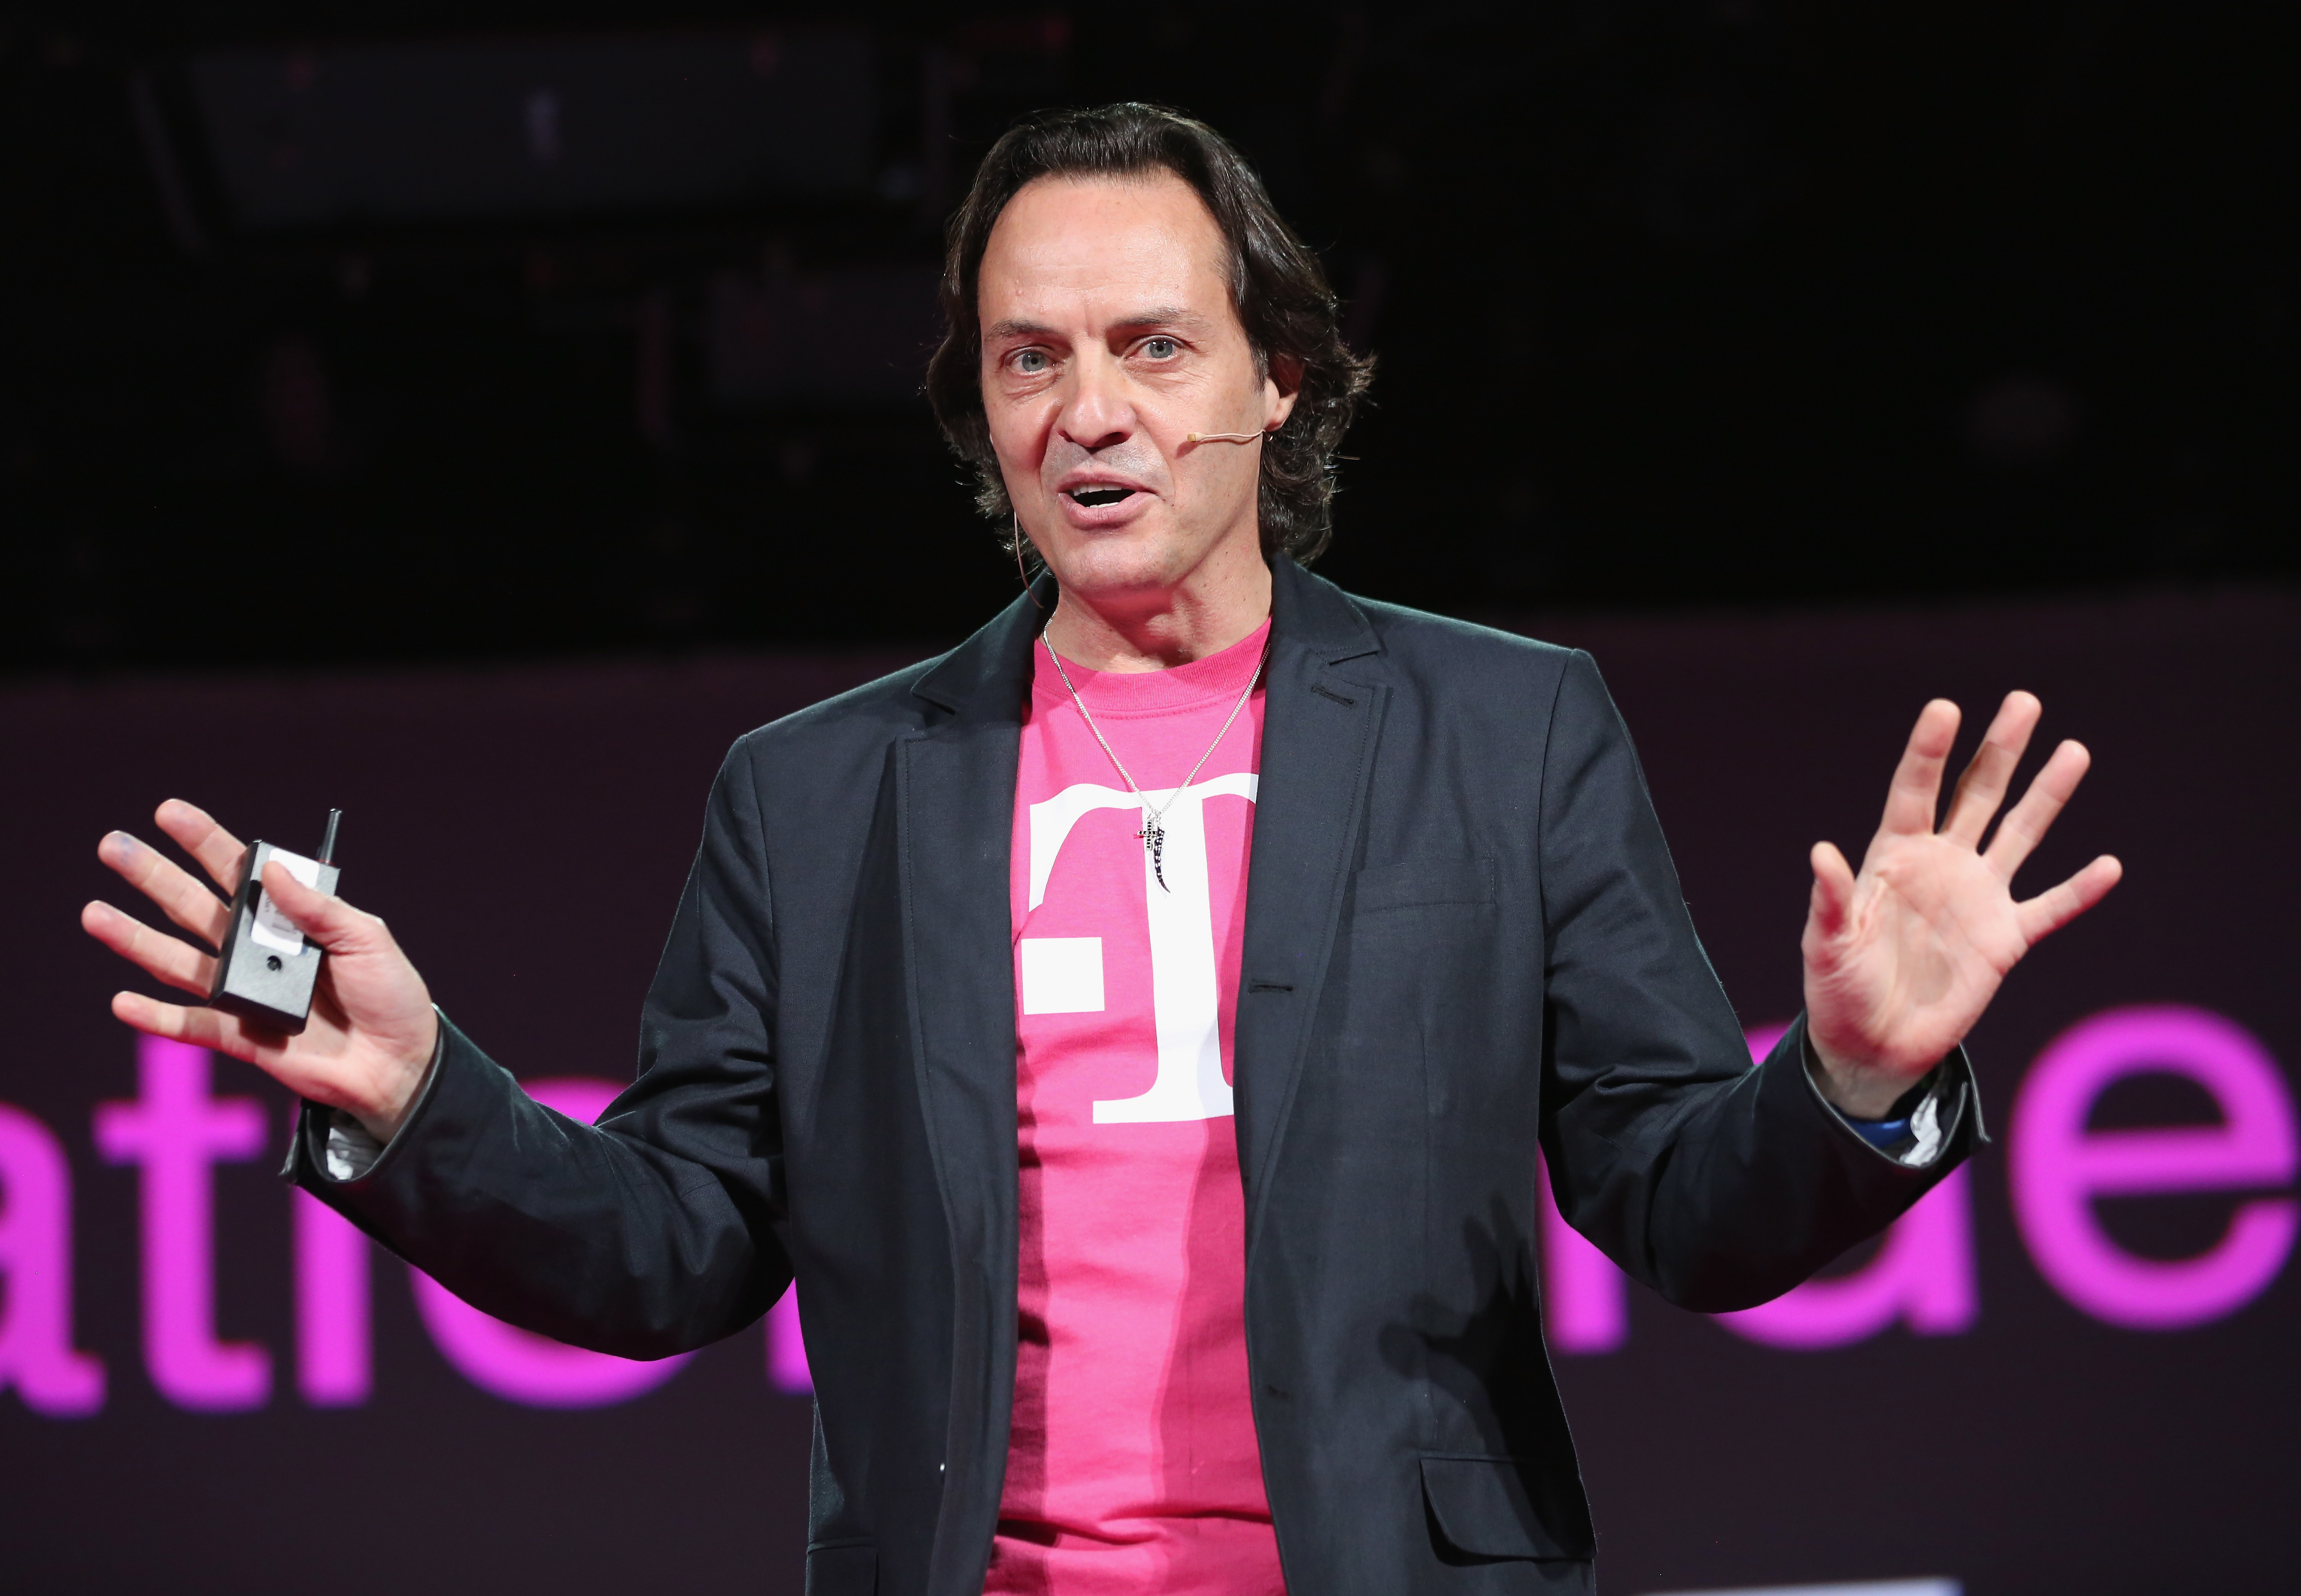 T Mobile Ceo John Legere May Replace Wework Ceo Adam Neumann